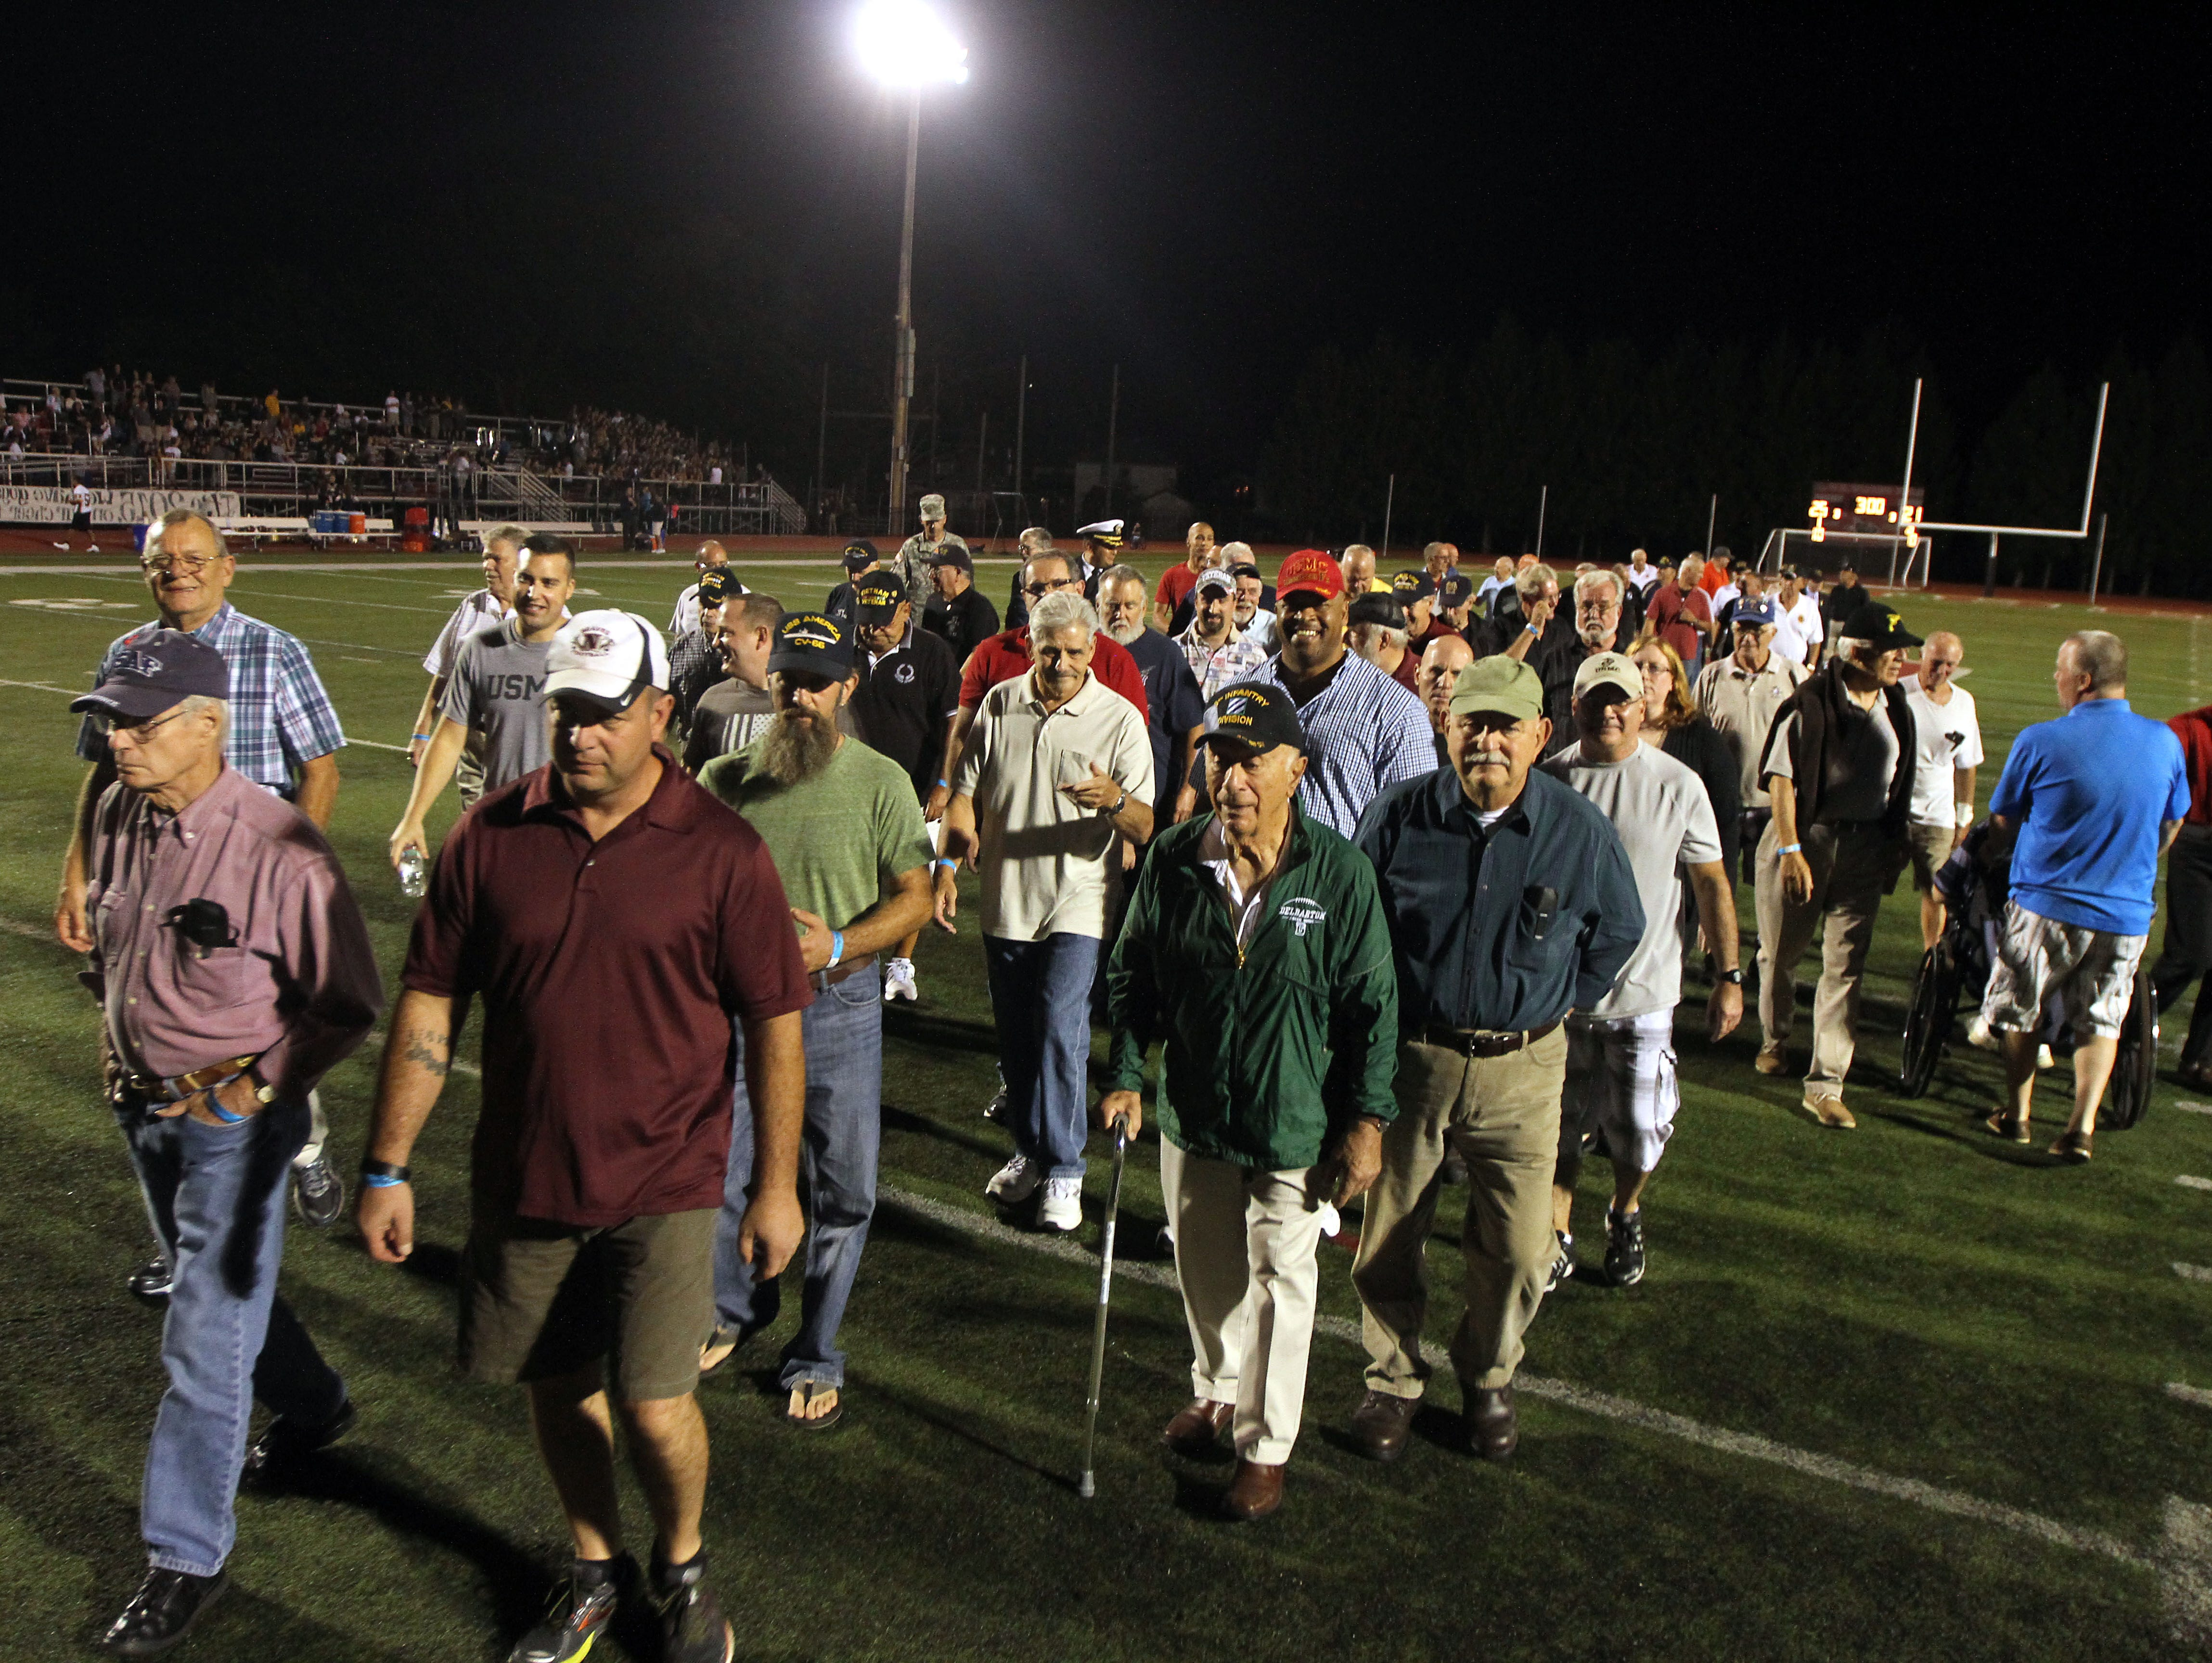 Boonton High School honored its graduate military veterans during halftime of the Boonton High School football game Friday night. The vets, some of whom are still residents, others coming back from out of town, also enjoyed a tailgate party prior to the game and ceremony.